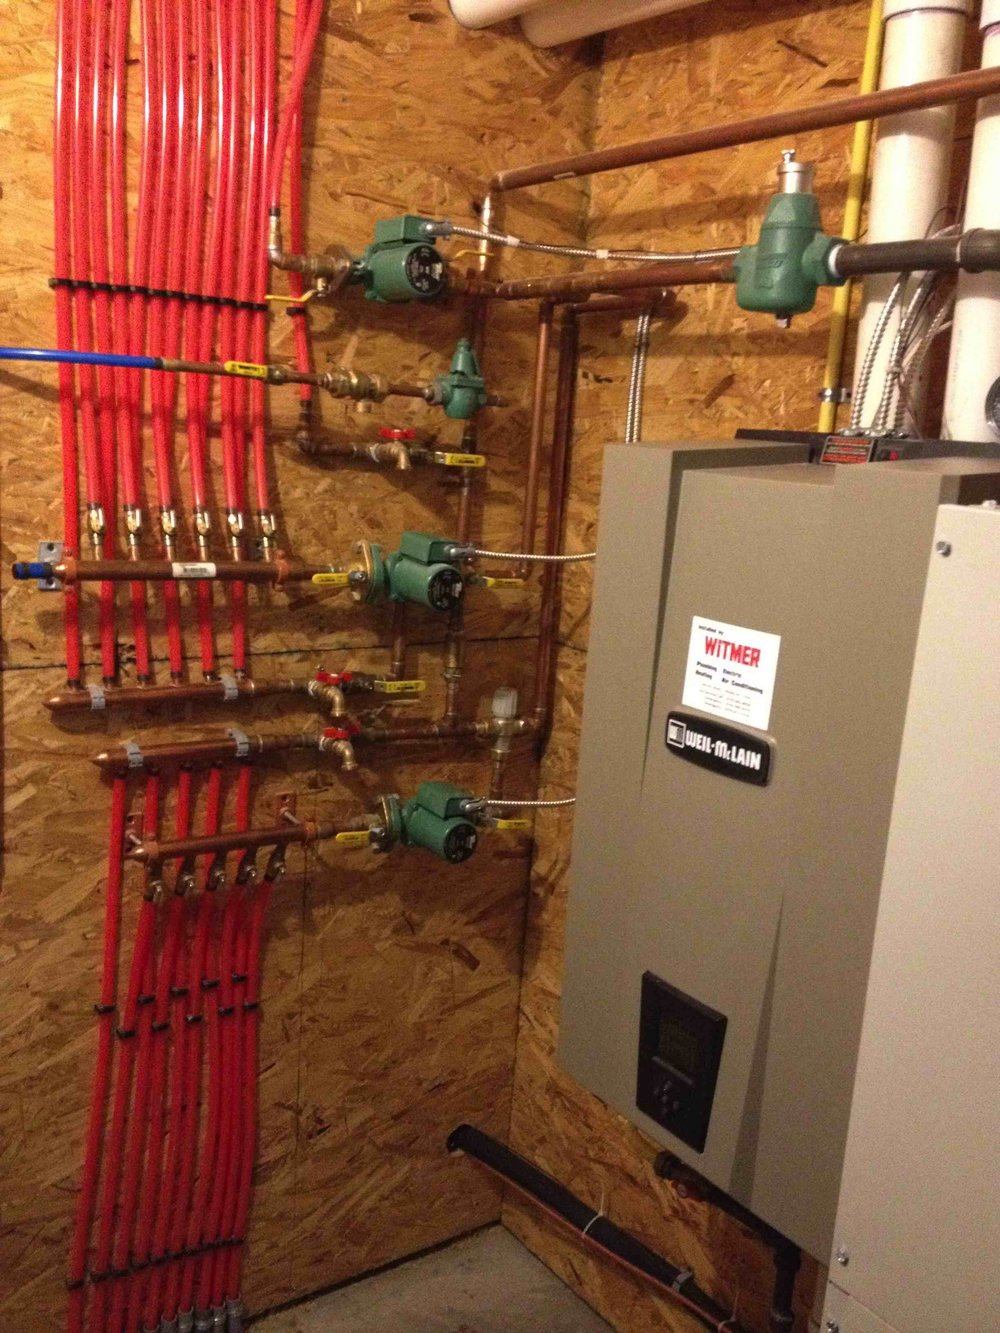 High Efficiency Gas Boiler w/ Radiant Heat Manifold